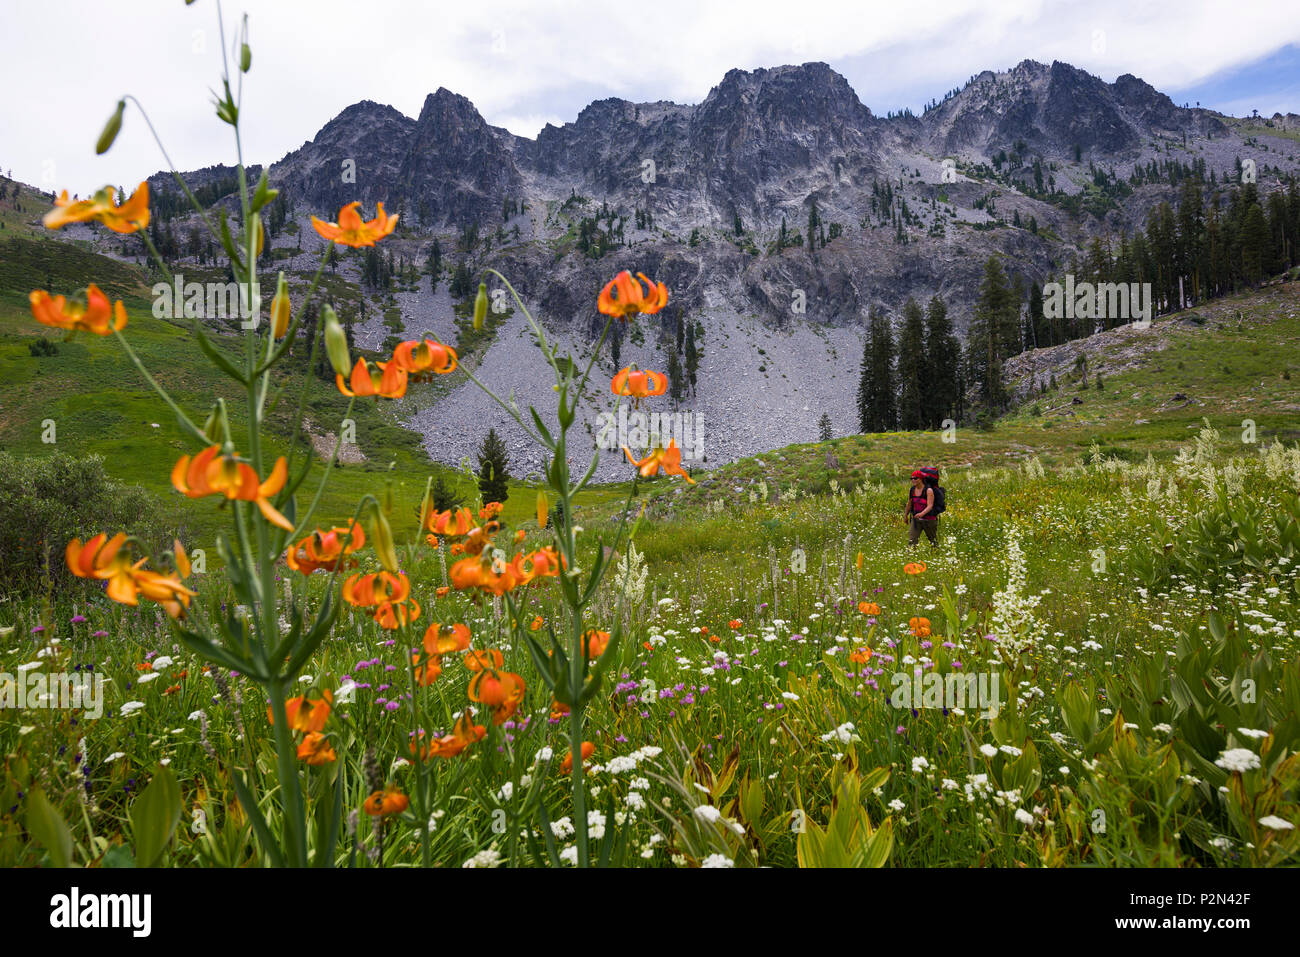 Backpacker in giant wildflower meadows near Round Lake in the Trinity Alps wilderness Four Lakes loop backpacking trail in California. - Stock Image